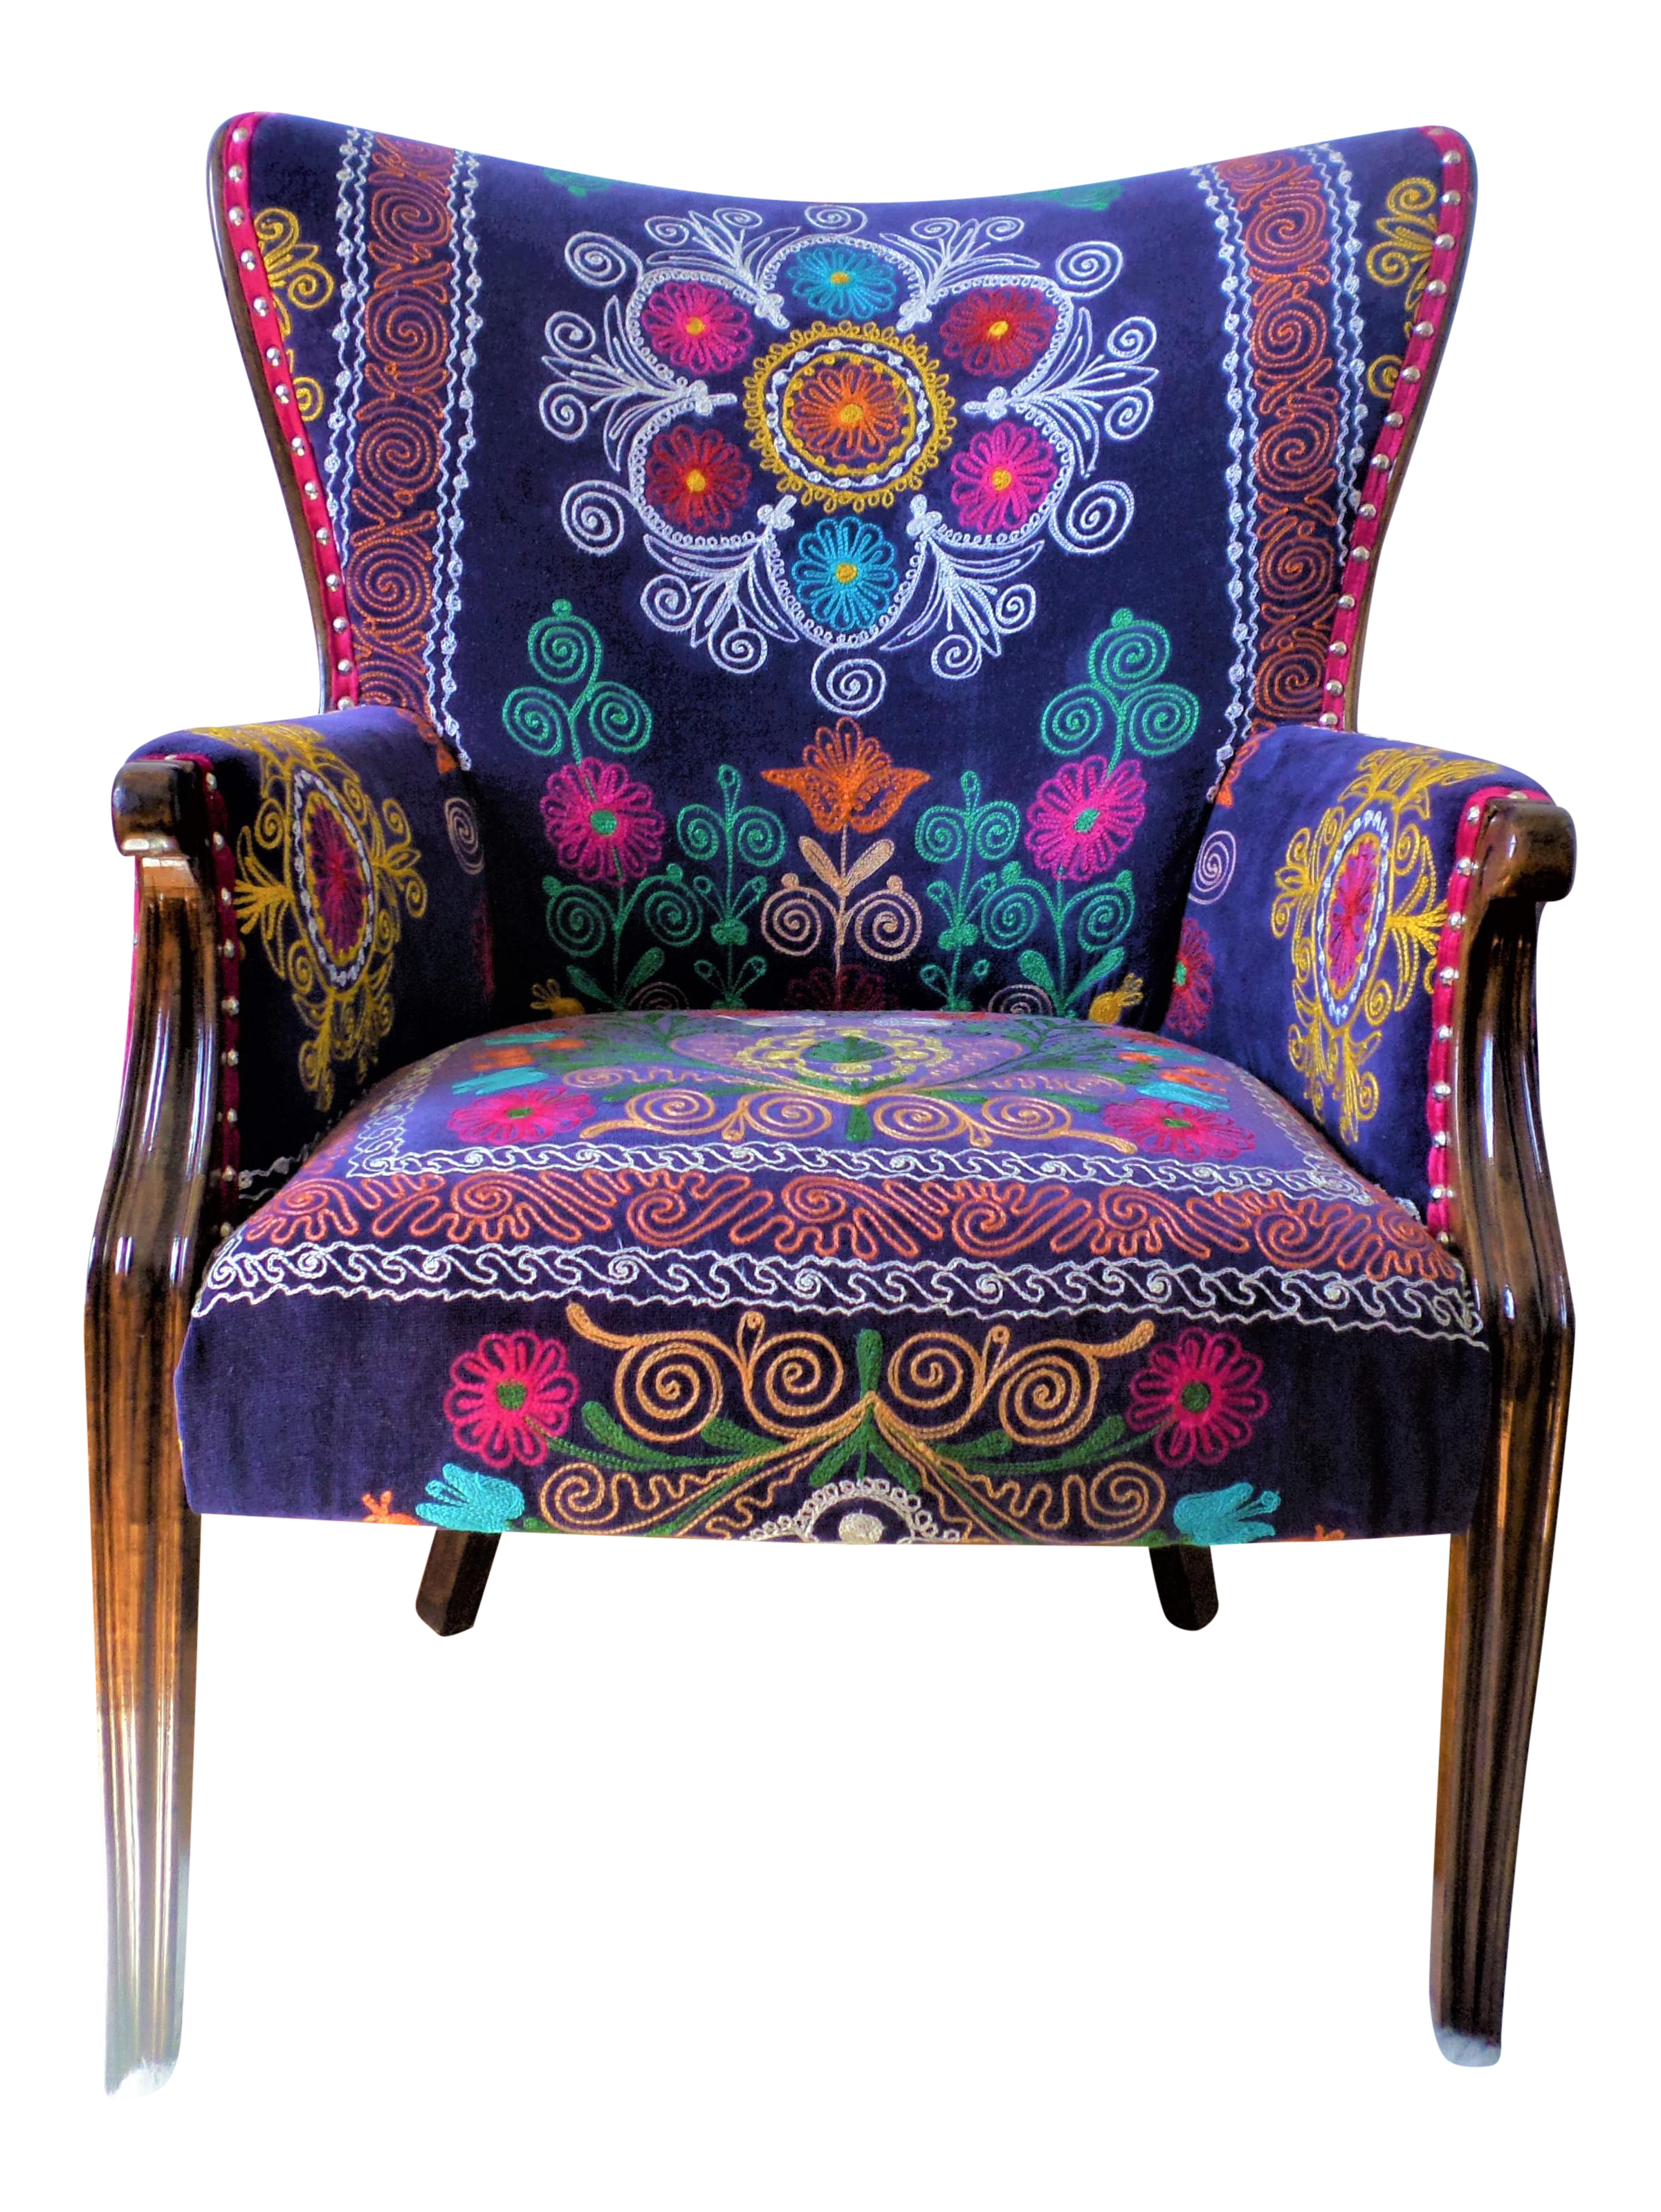 Superieur The Bohemian Chair, Suzani Embroidery, Bergere Style, Blue Velvet,  Wingback, Feather Seat Cushion, High Legged, Hand Carved, Silver Nail Head  Trim